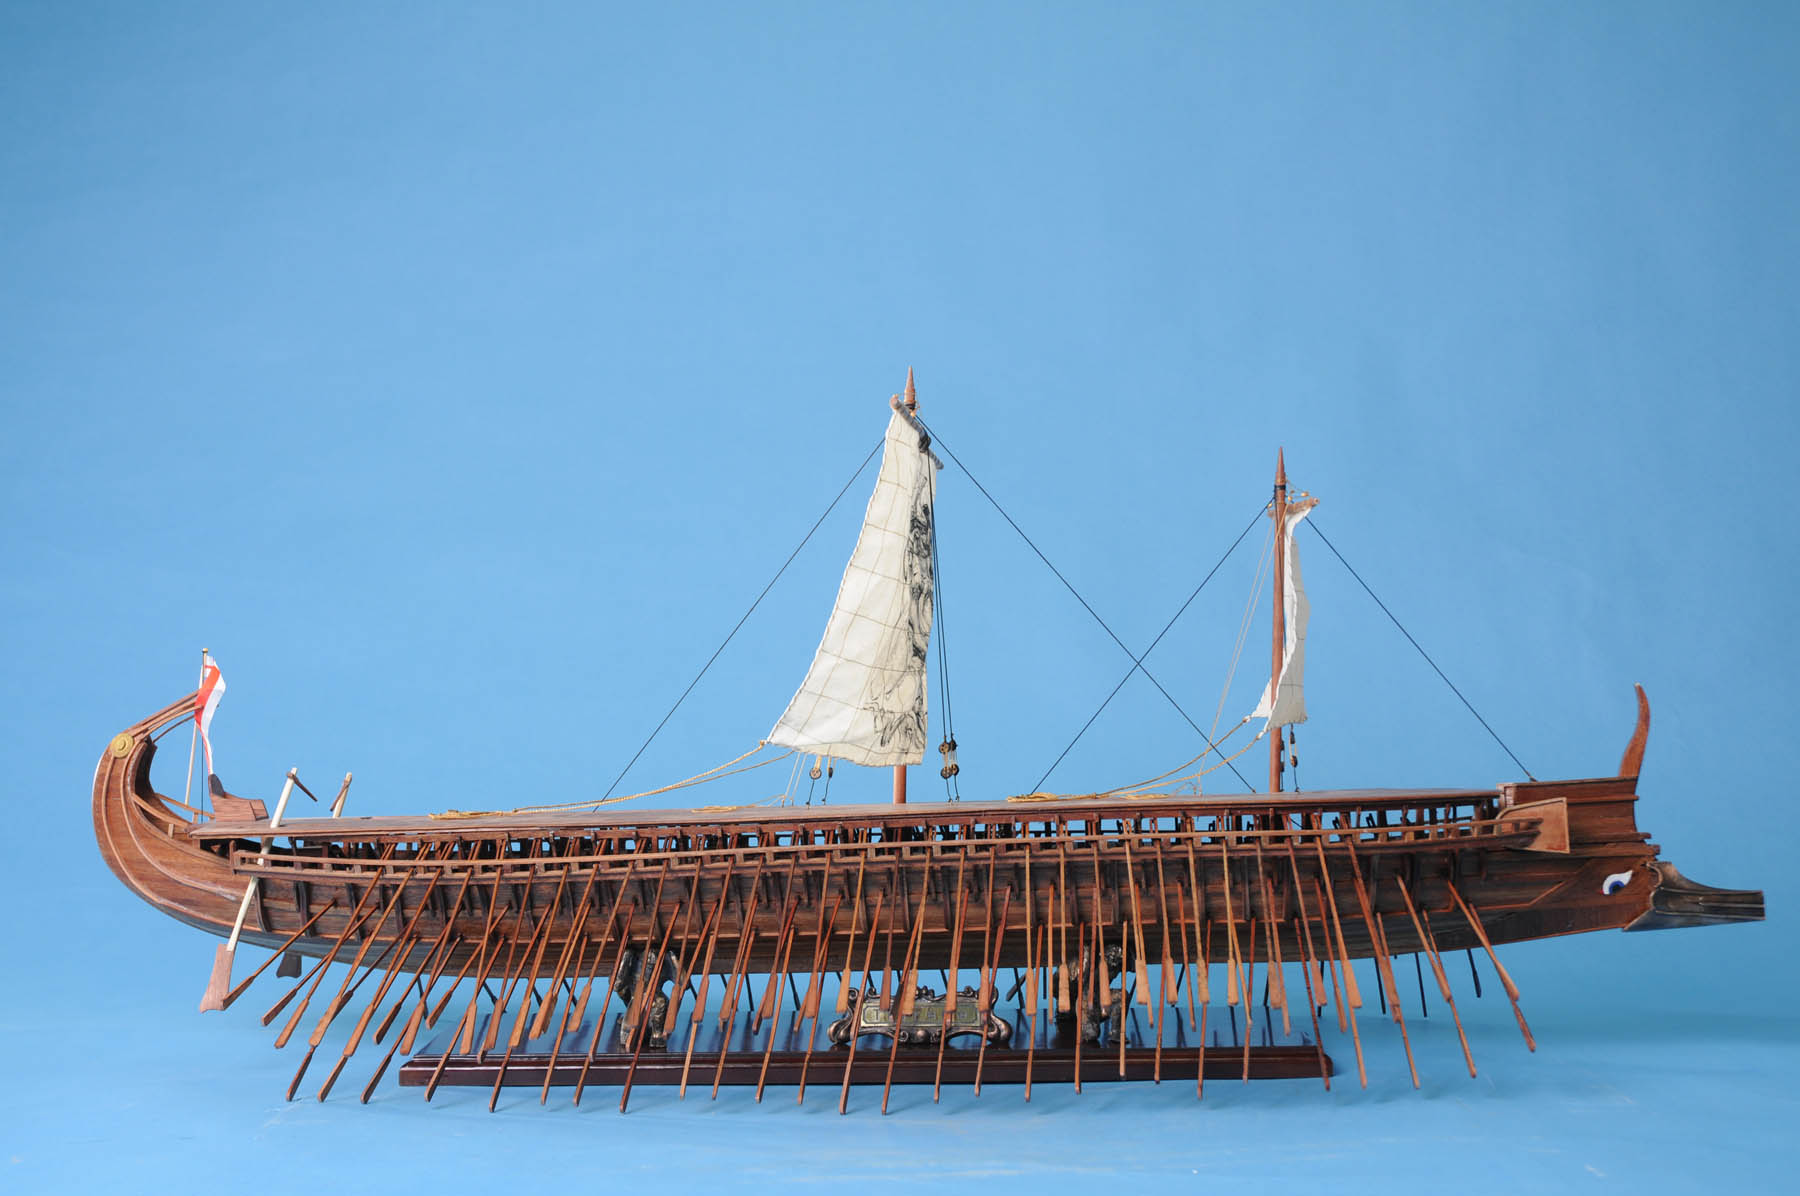 athenian trireme Swift and agile, the greek trireme was one of the most devastating warships of the ancient world.